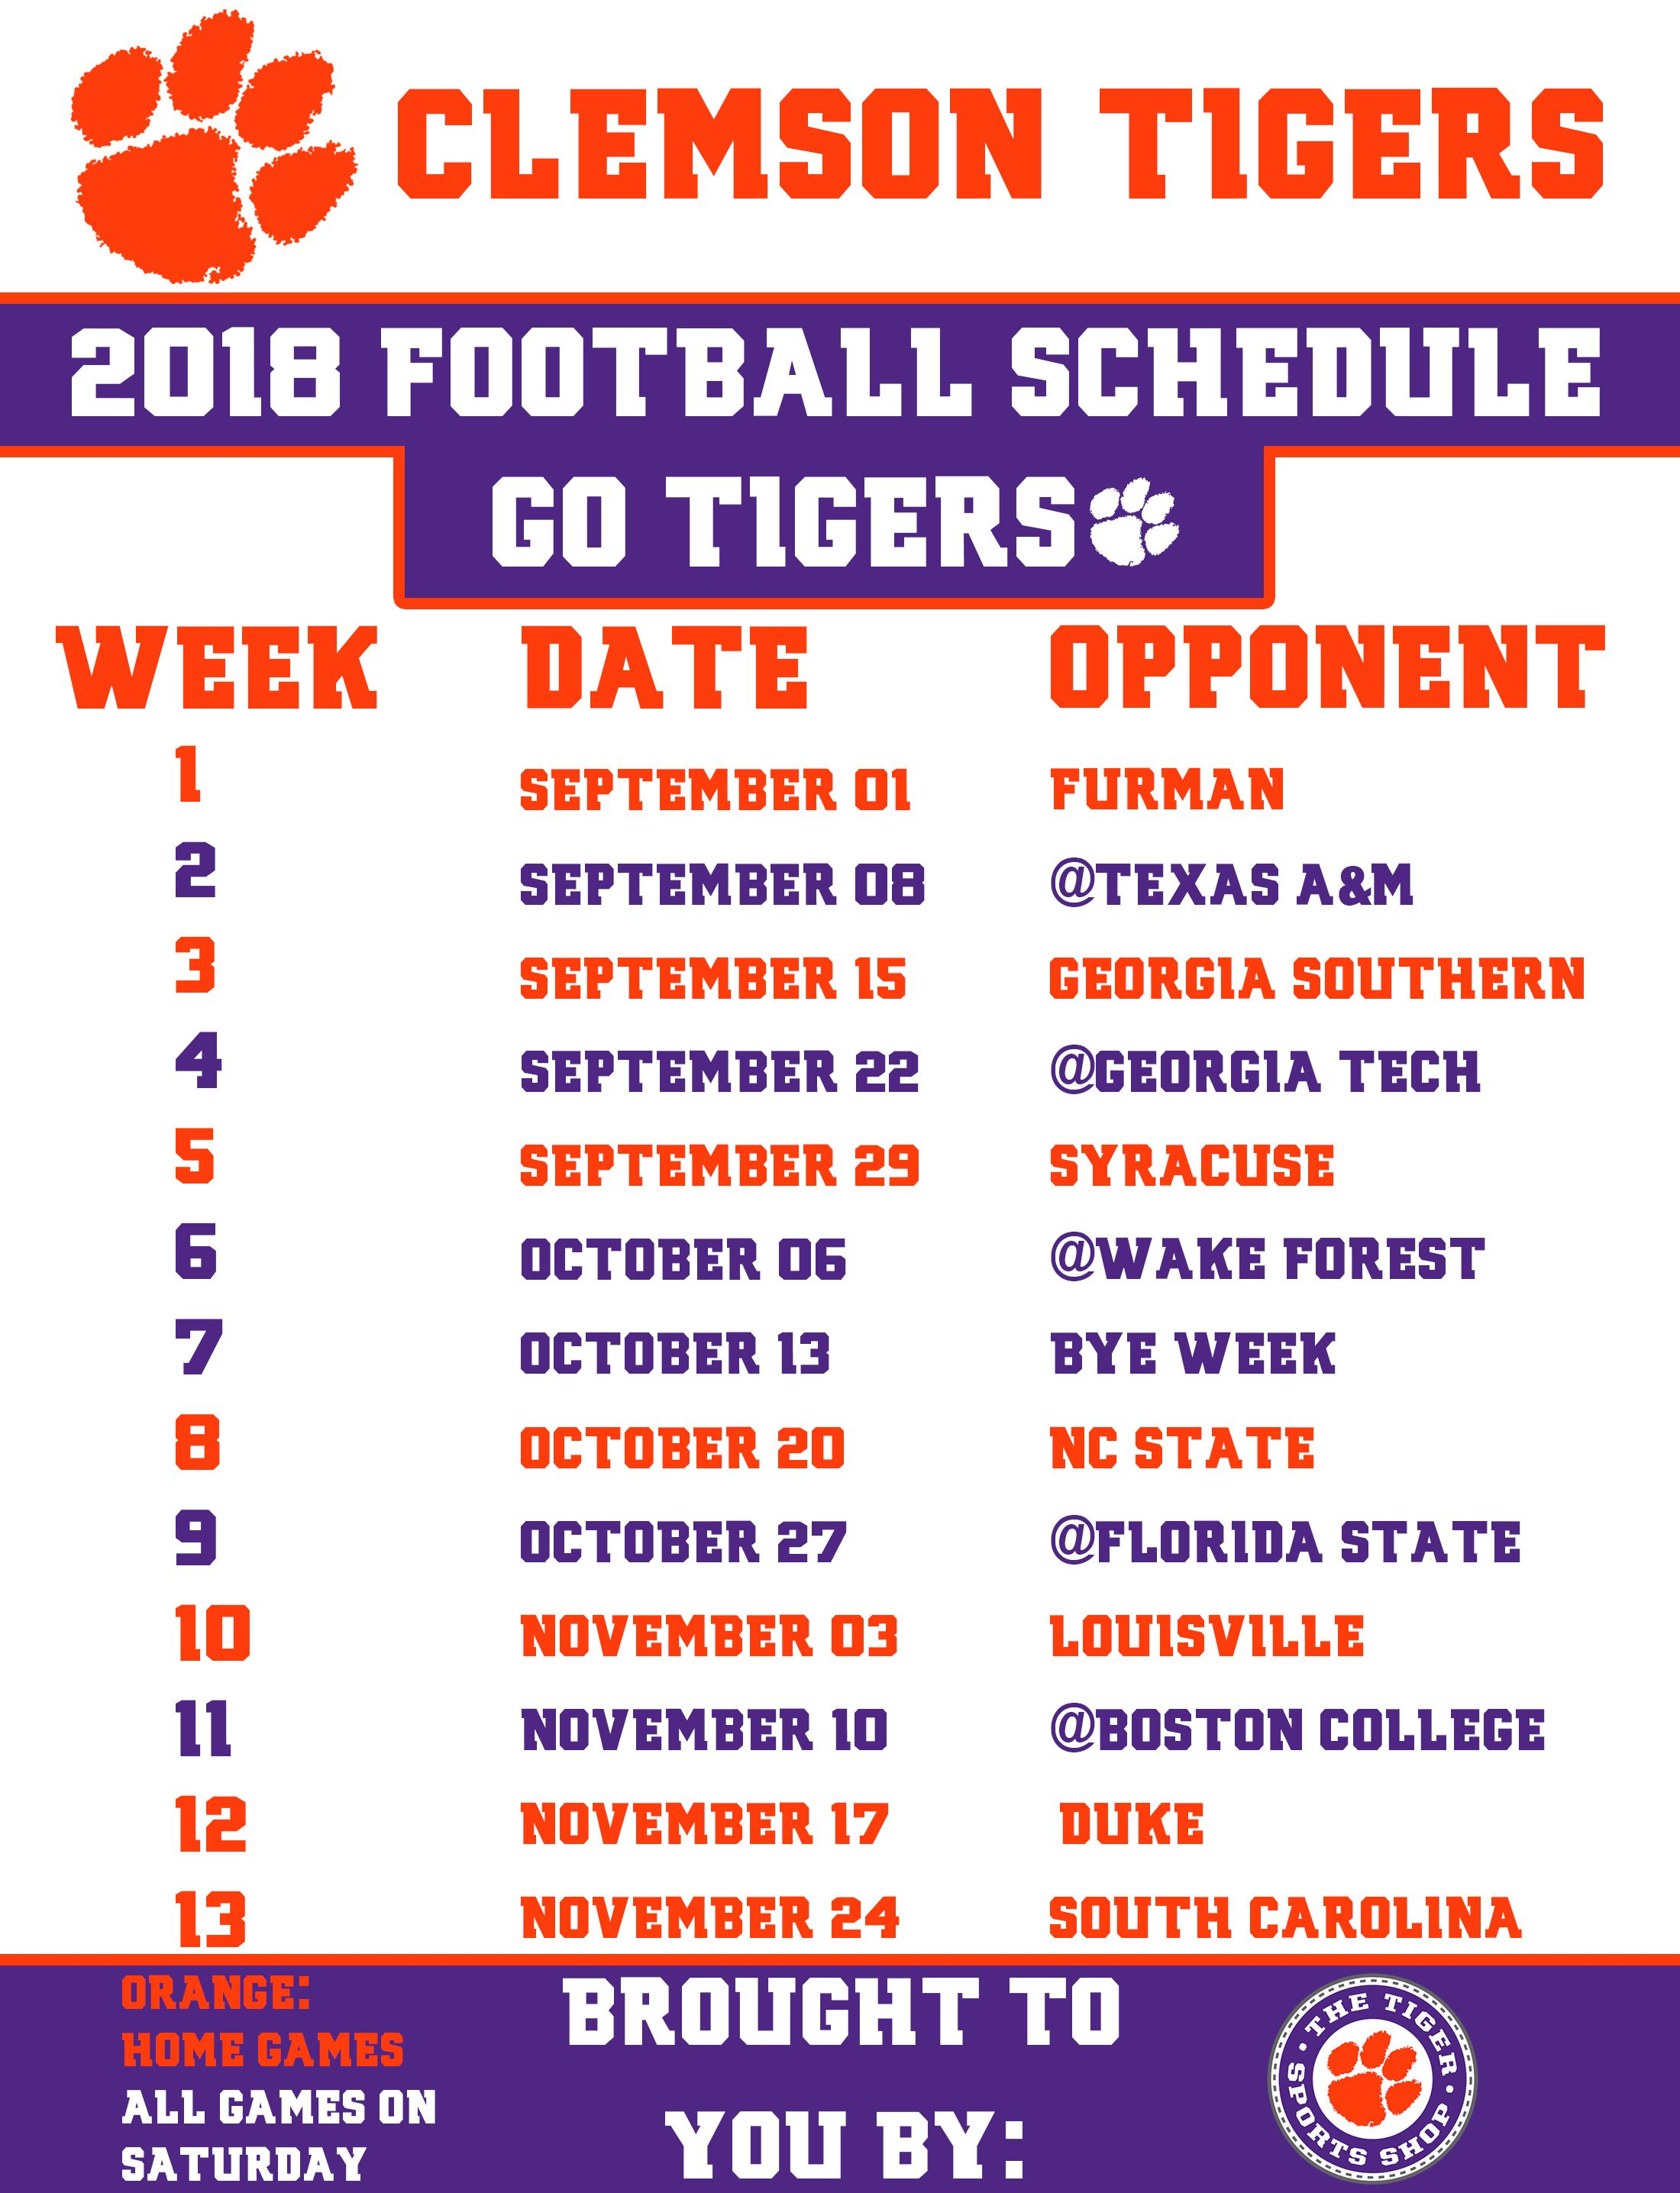 Ready for another ClemsonFb season?! ‍♂️ Here's a